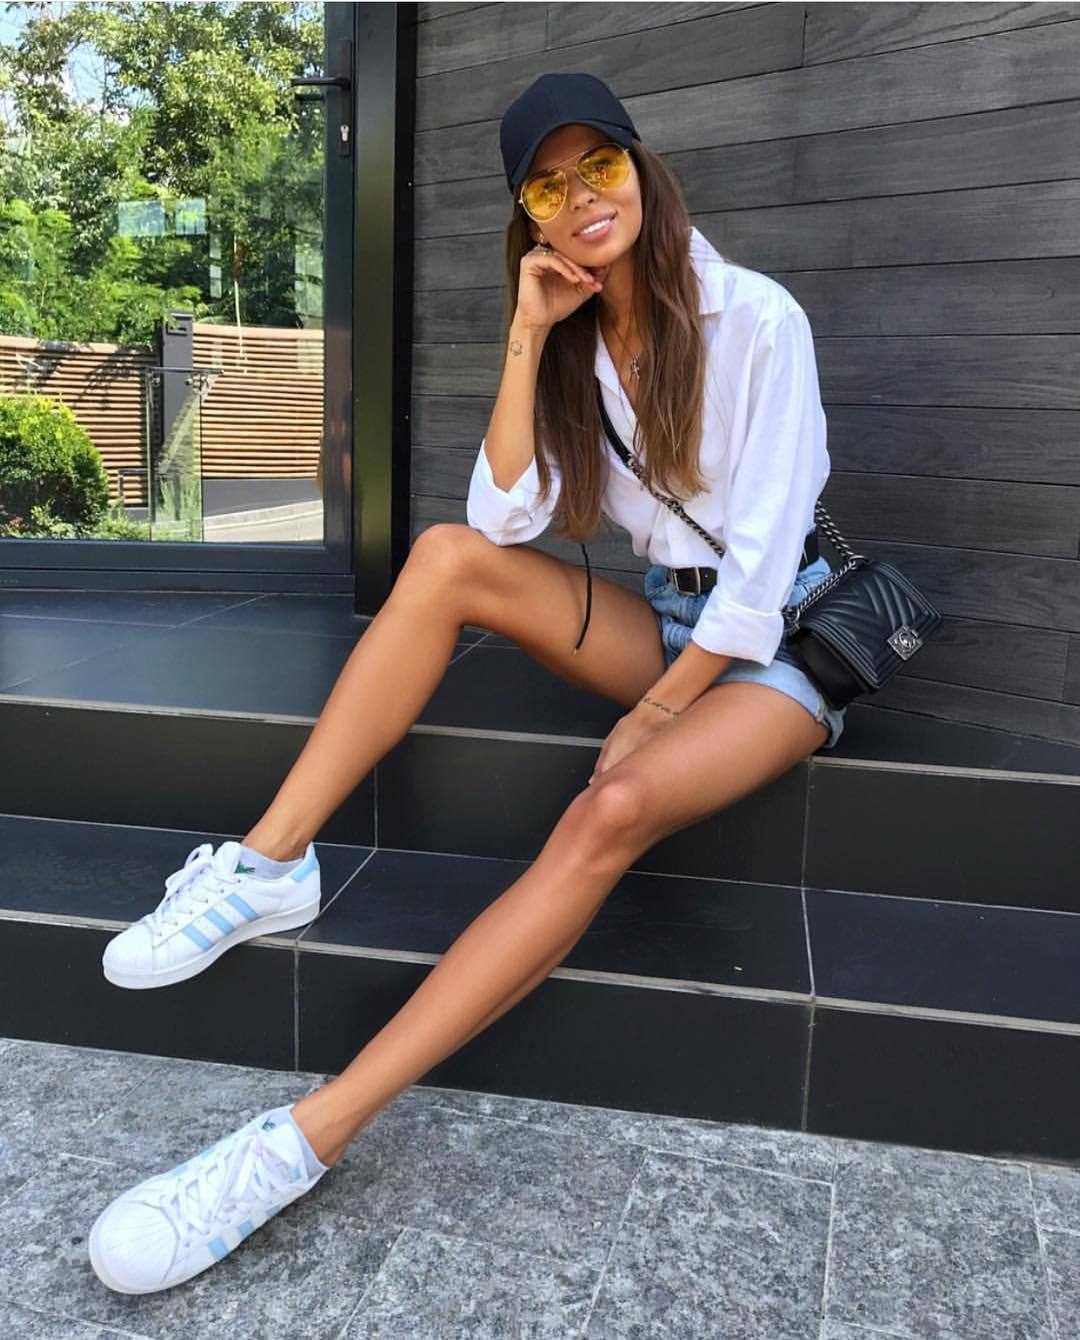 White Shirt, Blue Denim Shorts And White Sneakers For Summer Casual Walks 2019